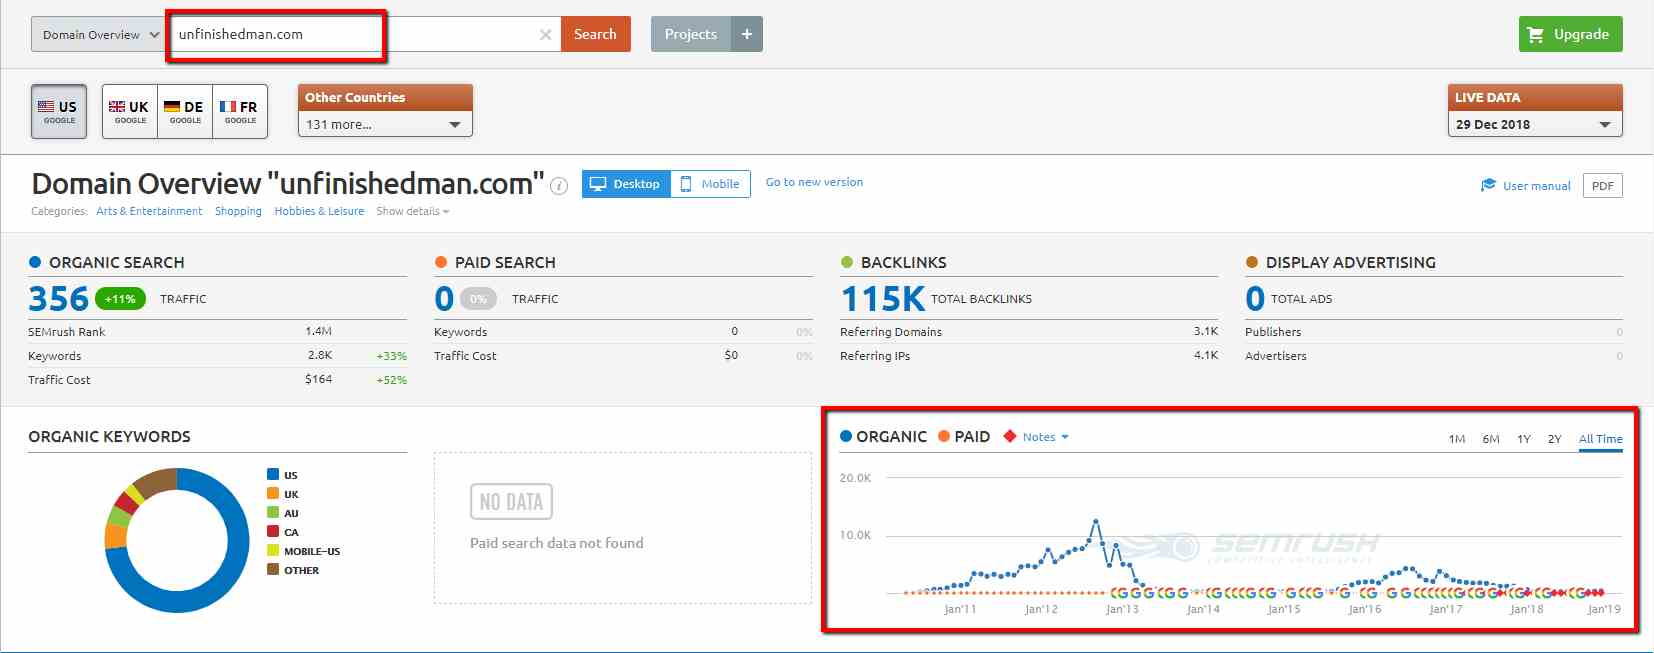 unfinishedman.com semrush